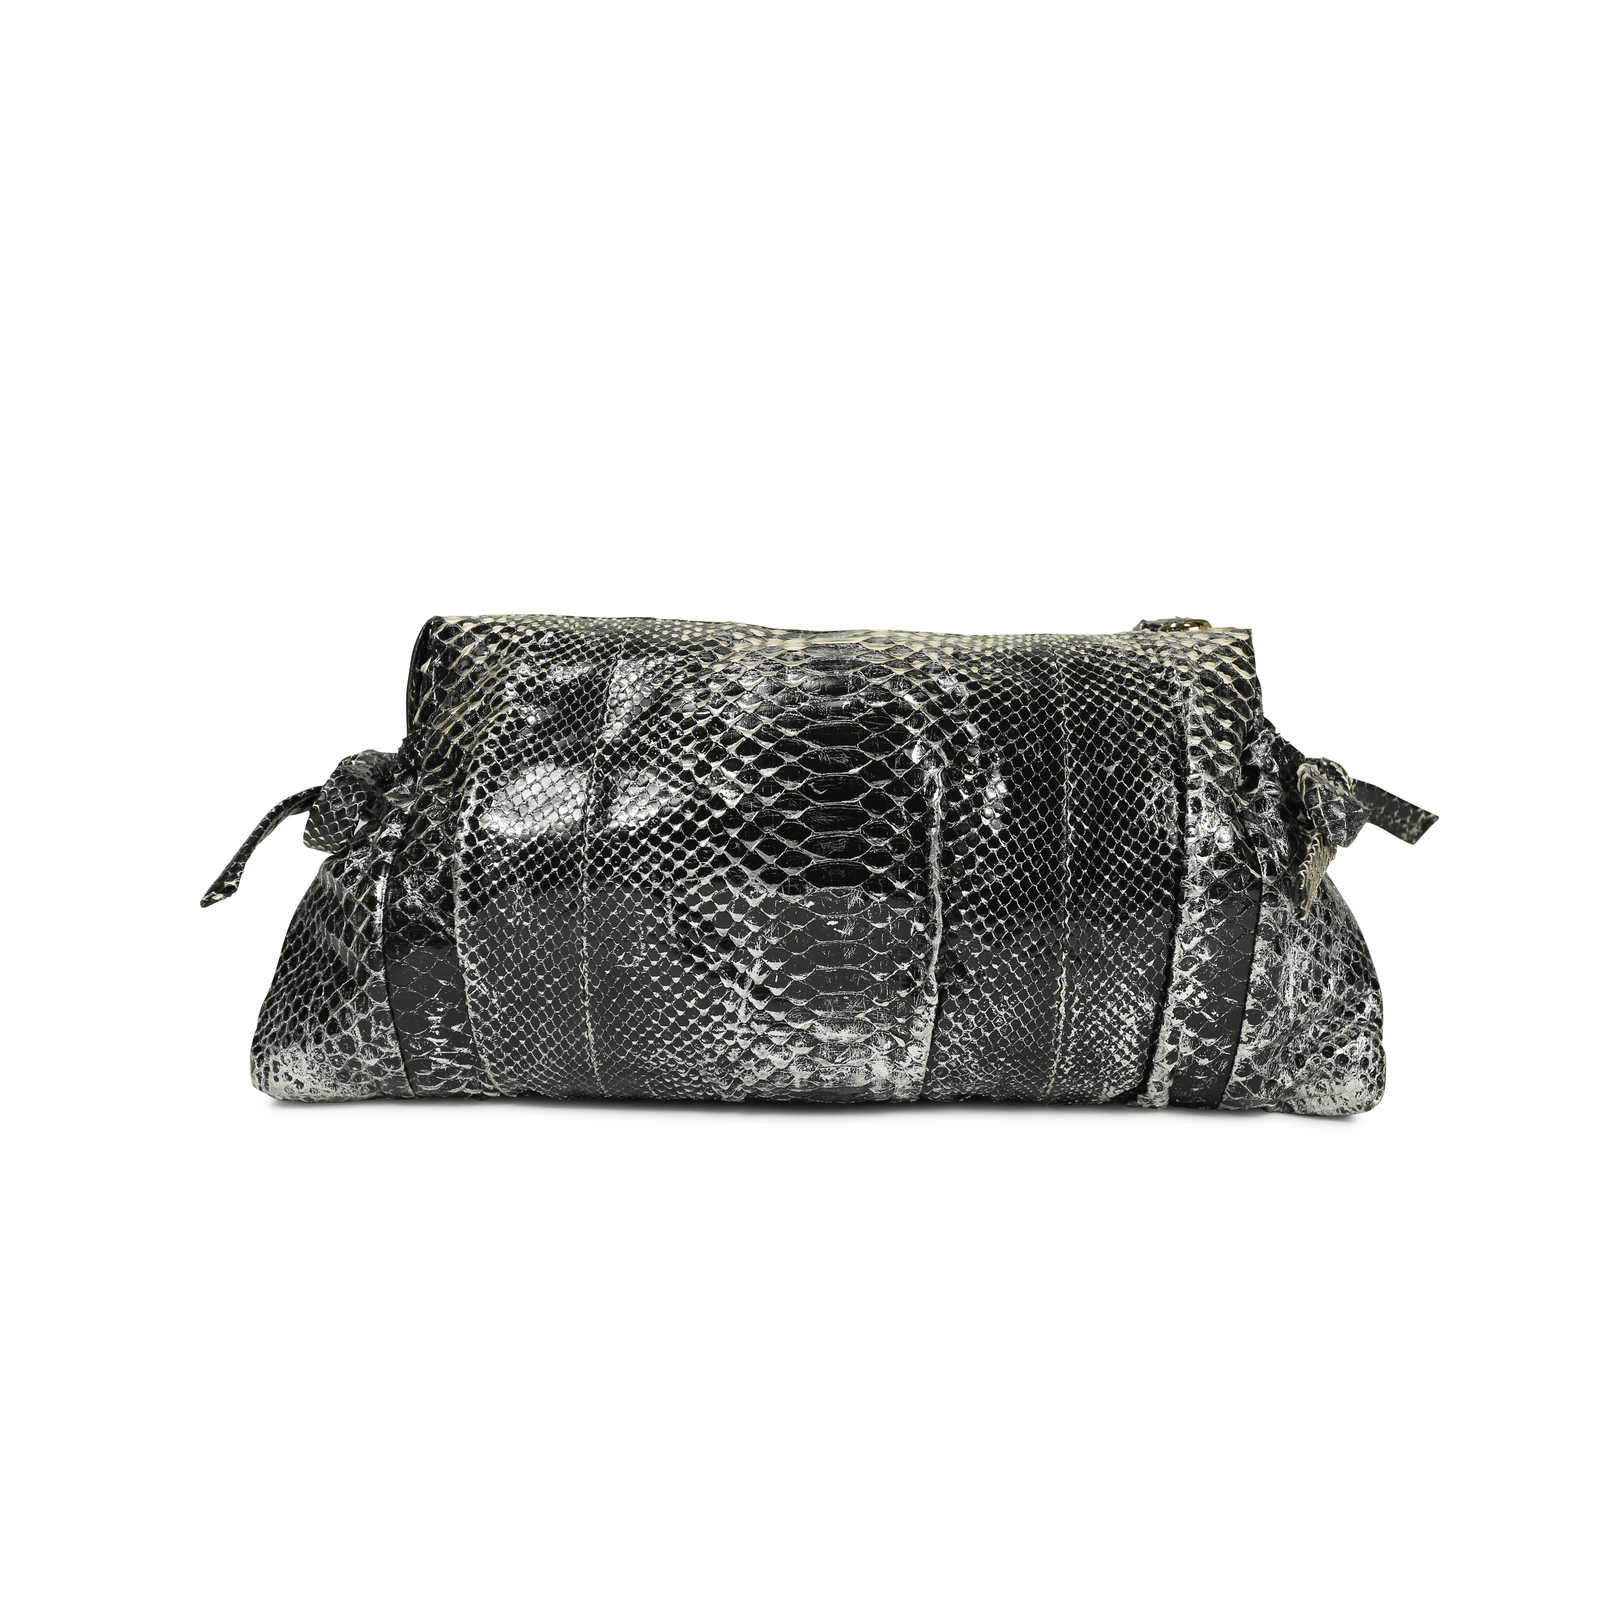 adf566702 ... Authentic Second Hand Gucci Hysteria Clutch (PSS-148-00003) - Thumbnail  1 ...